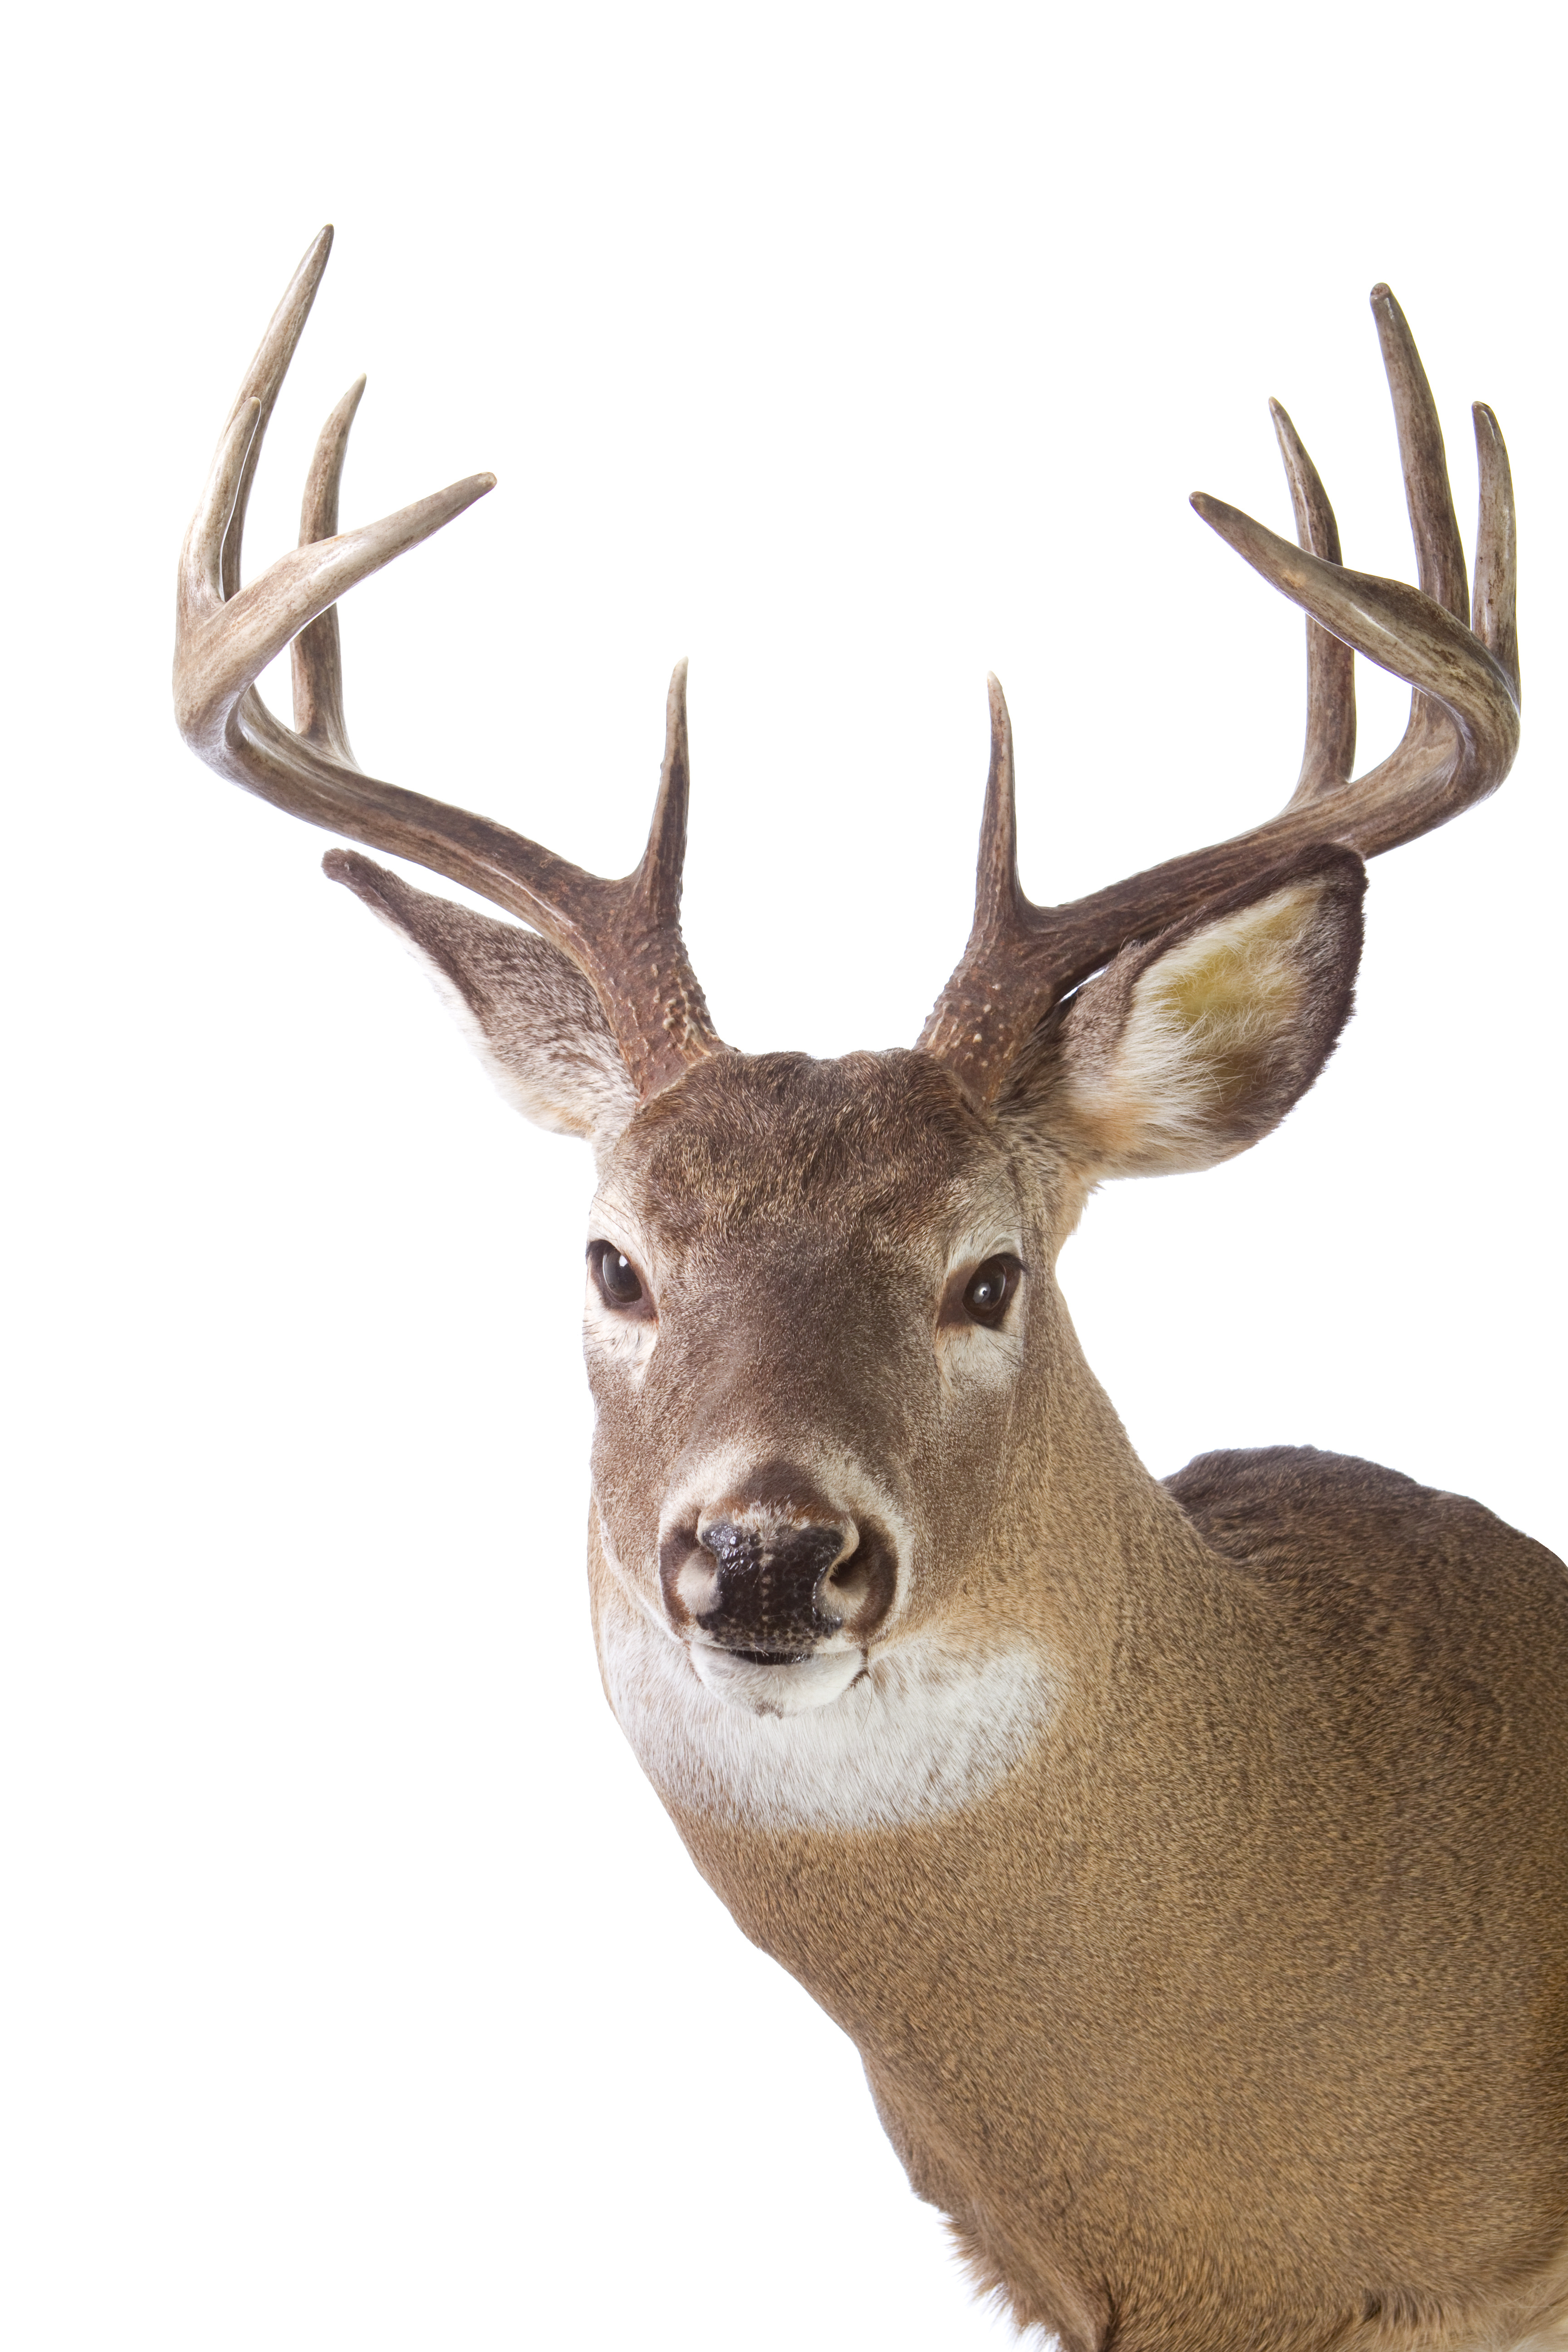 iowa man ordered to pay over 4k for illegal poaching of deer